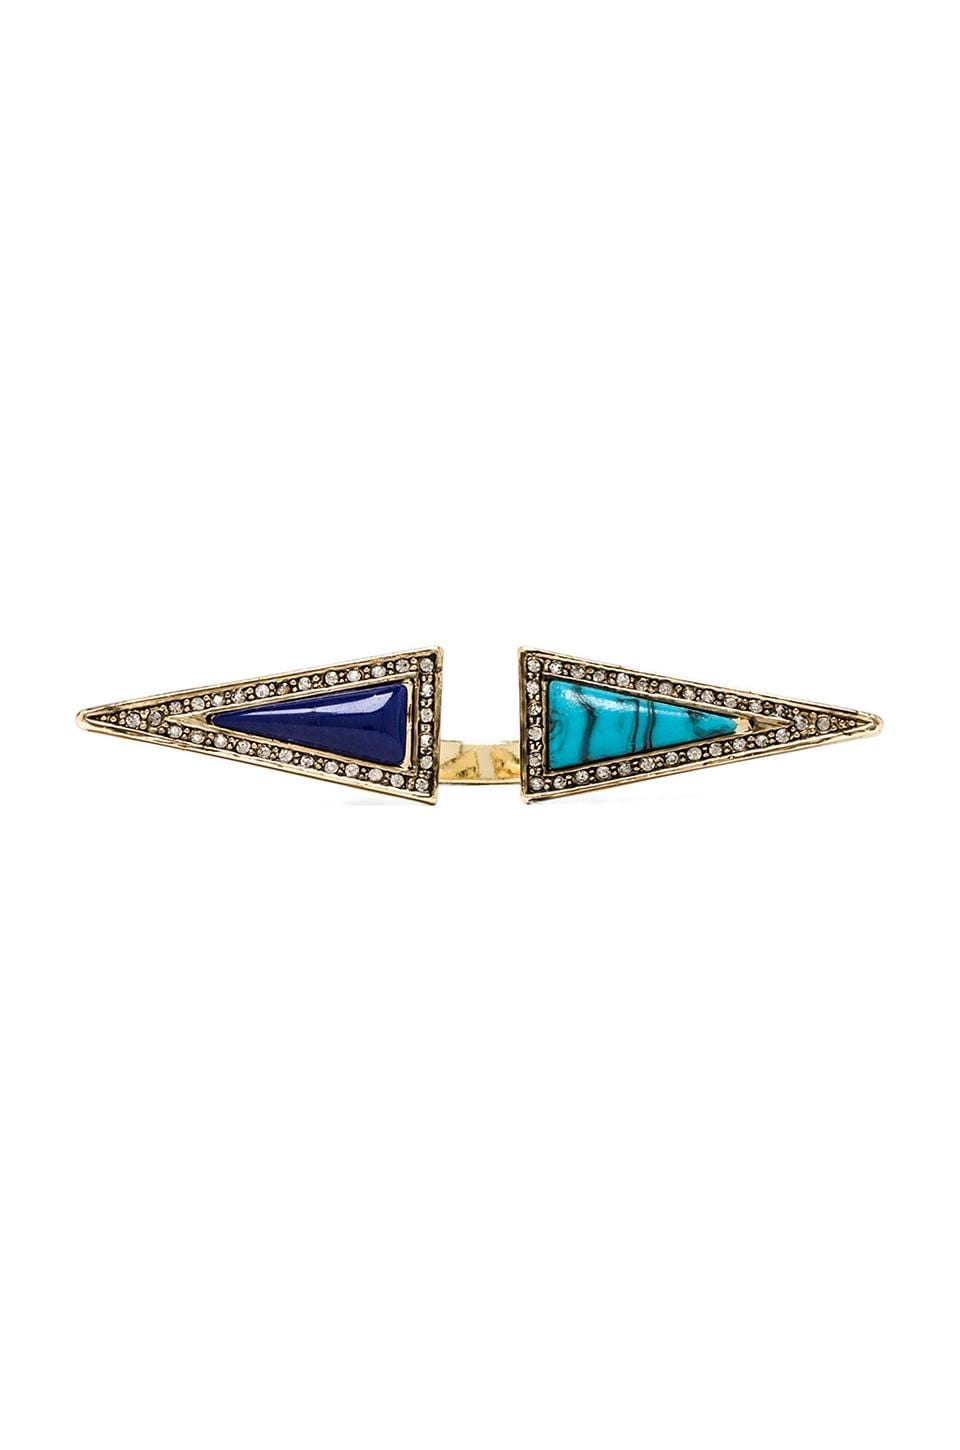 House of Harlow 1960 House of Harlow Isosceles Reflection Ring in Gold